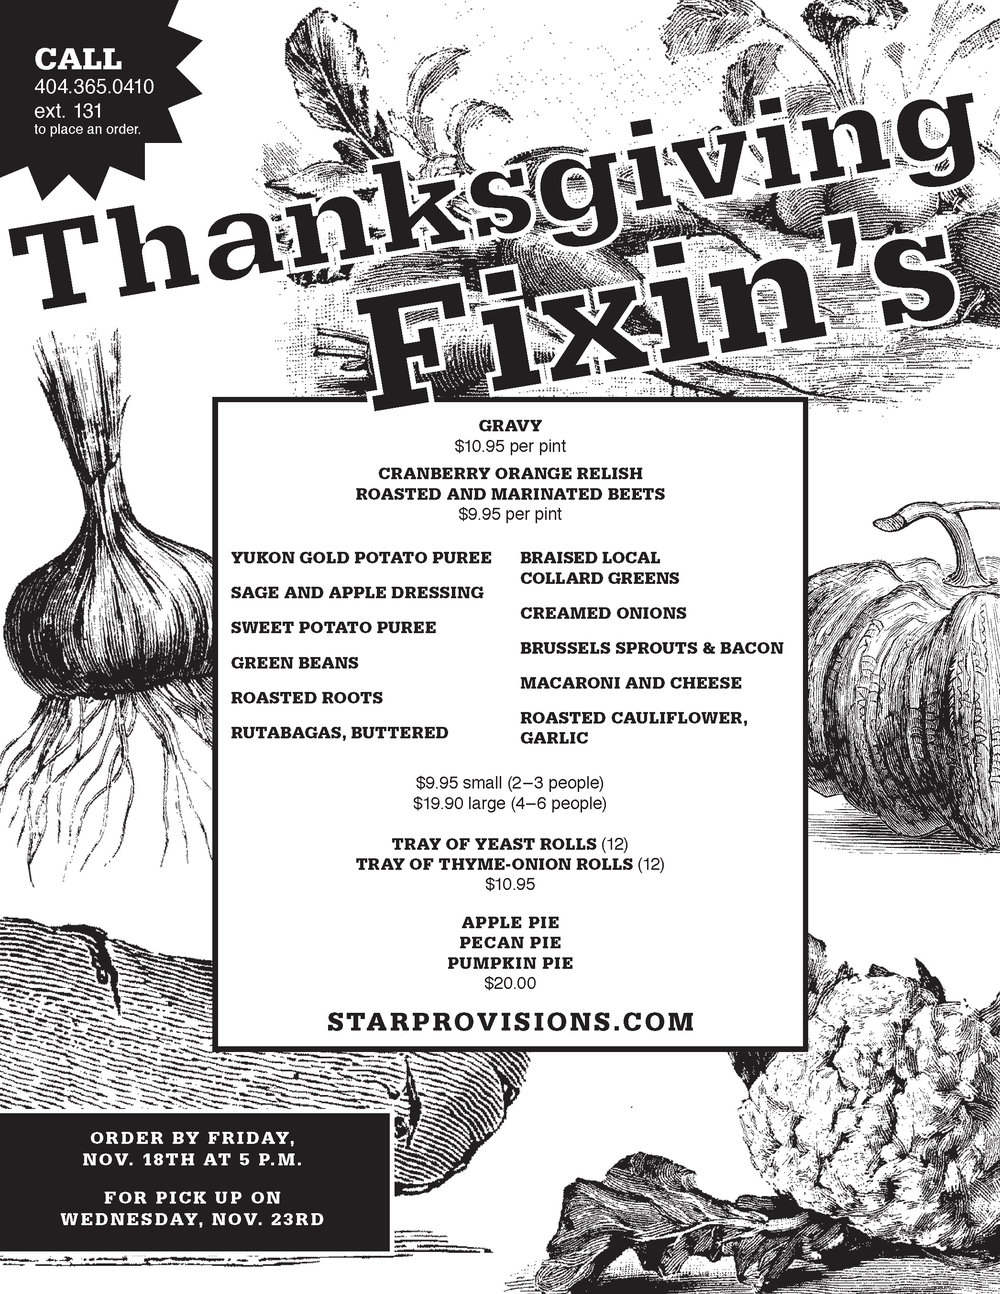 1016-sp-thanksgivingfixins.jpg